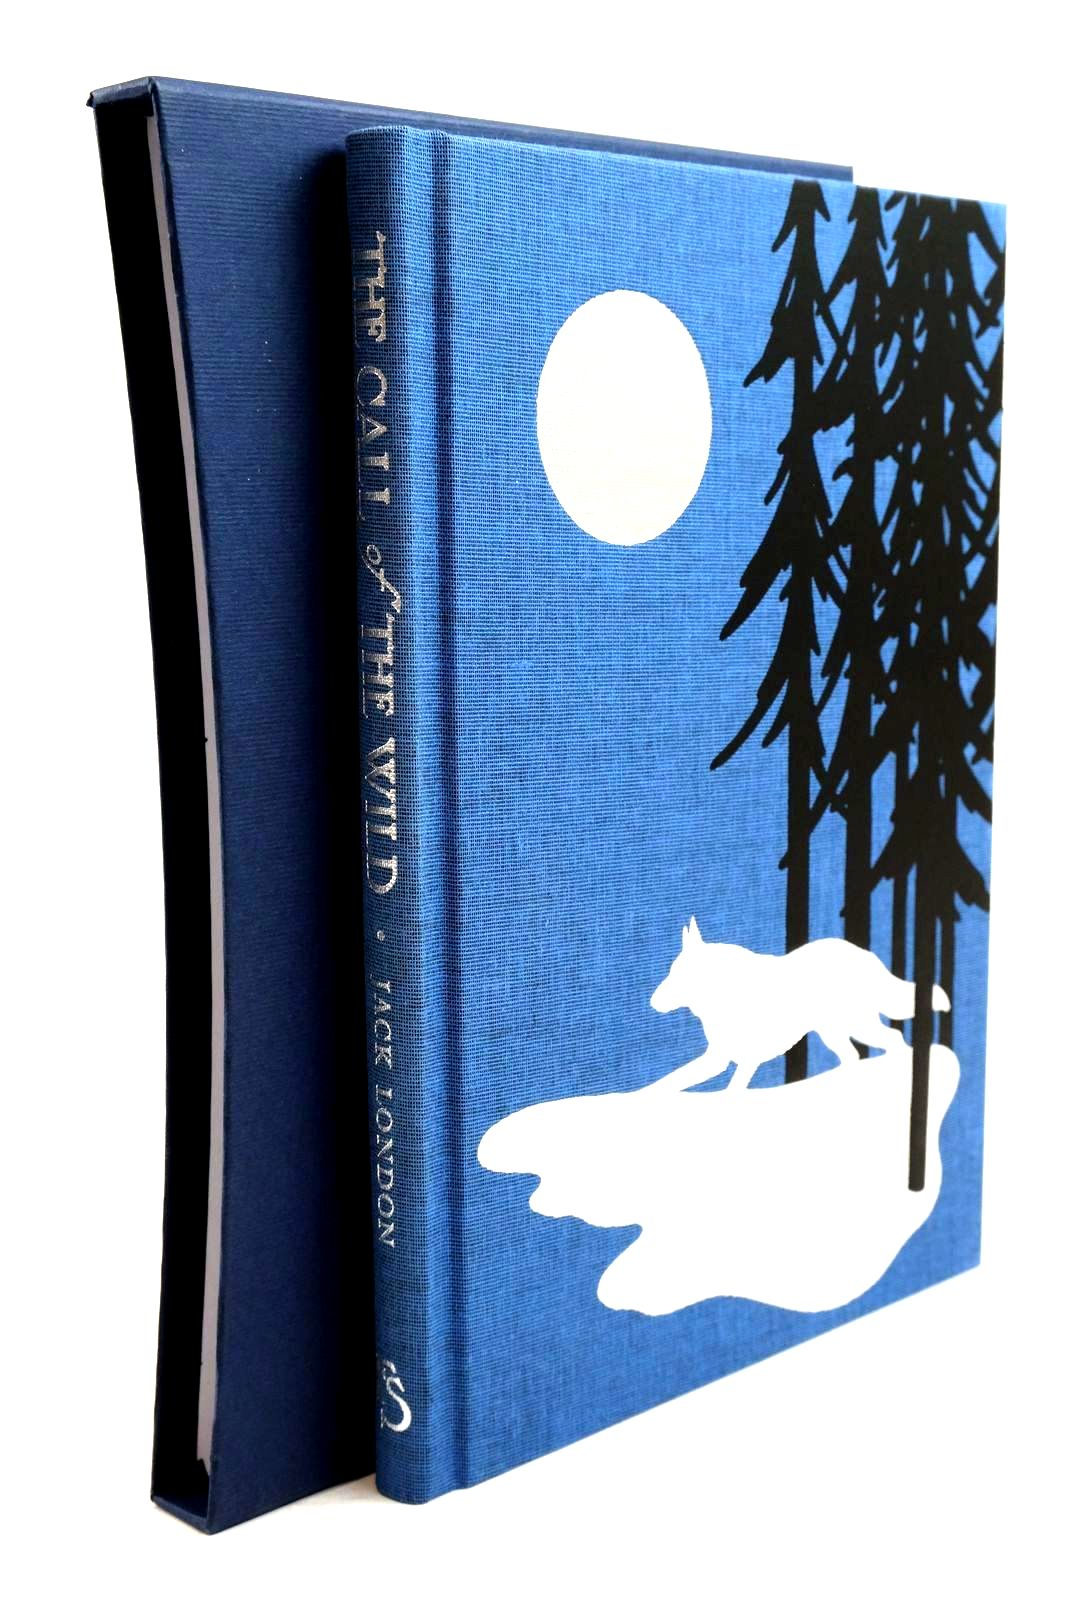 Photo of THE CALL OF THE WILD written by London, Jack illustrated by Rorer, Abigail published by Folio Society (STOCK CODE: 1320781)  for sale by Stella & Rose's Books